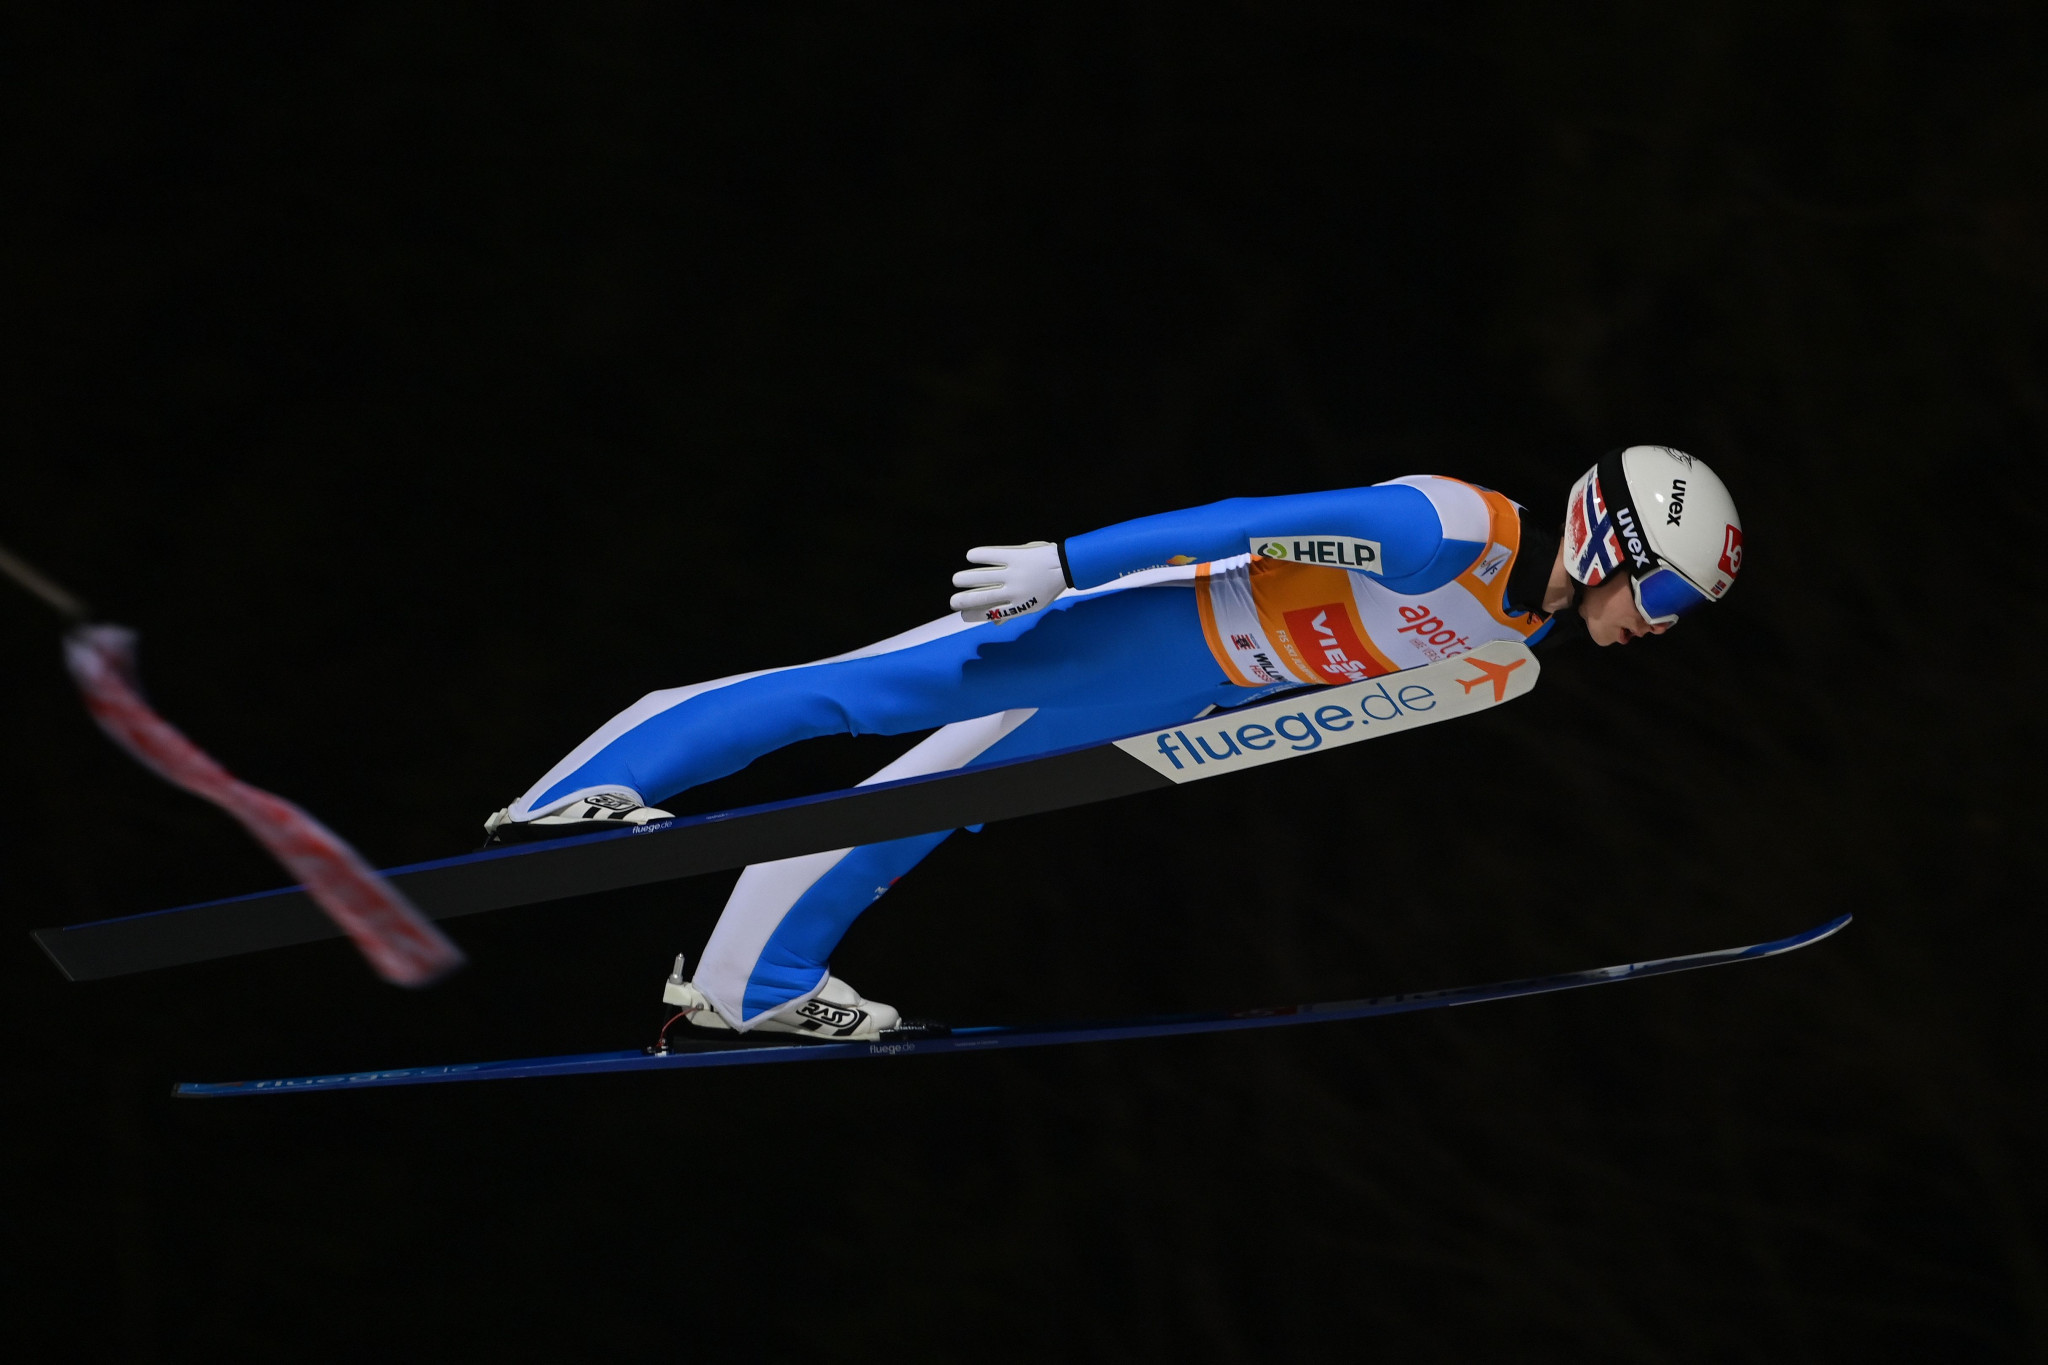 Granerud wins ninth FIS Ski Jumping World Cup of season in Klingenthal